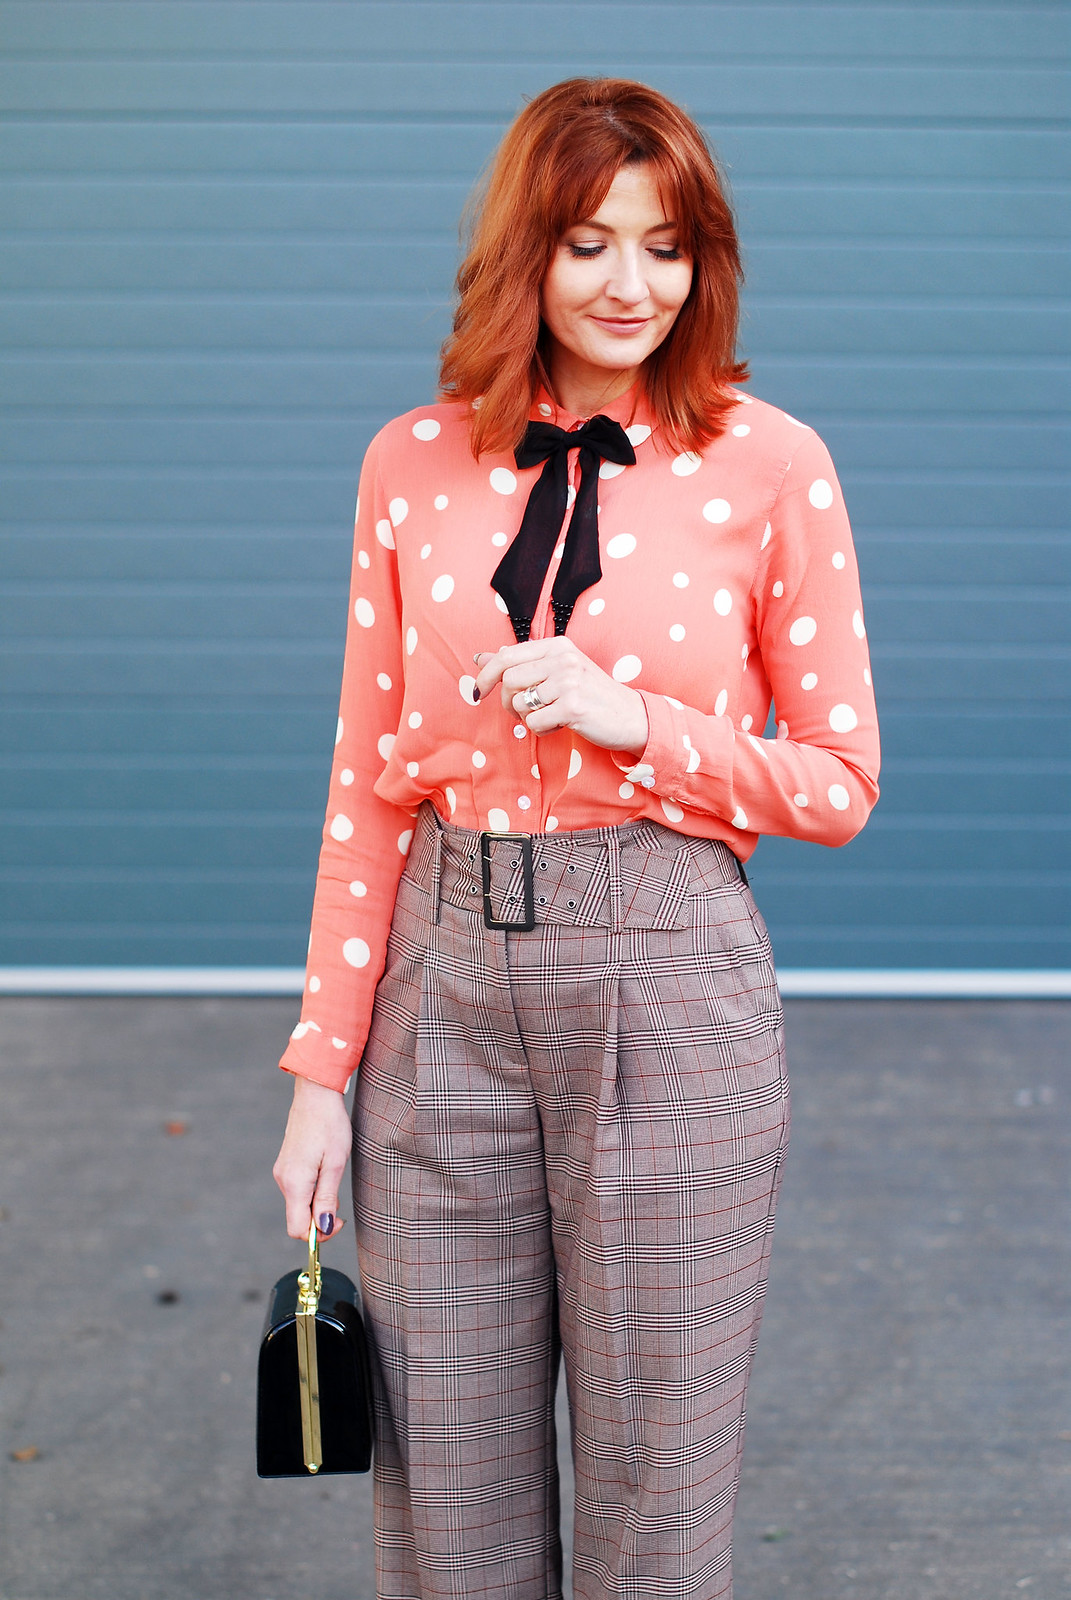 How to get the Katharine Hepburn look: Wide leg check turn up trousers masculine-cut black coat polka dot blouse with embellished black bow neck tie black box handbag cone-heeled black pointed shoes | Not Dressed As Lamb, over 40 style